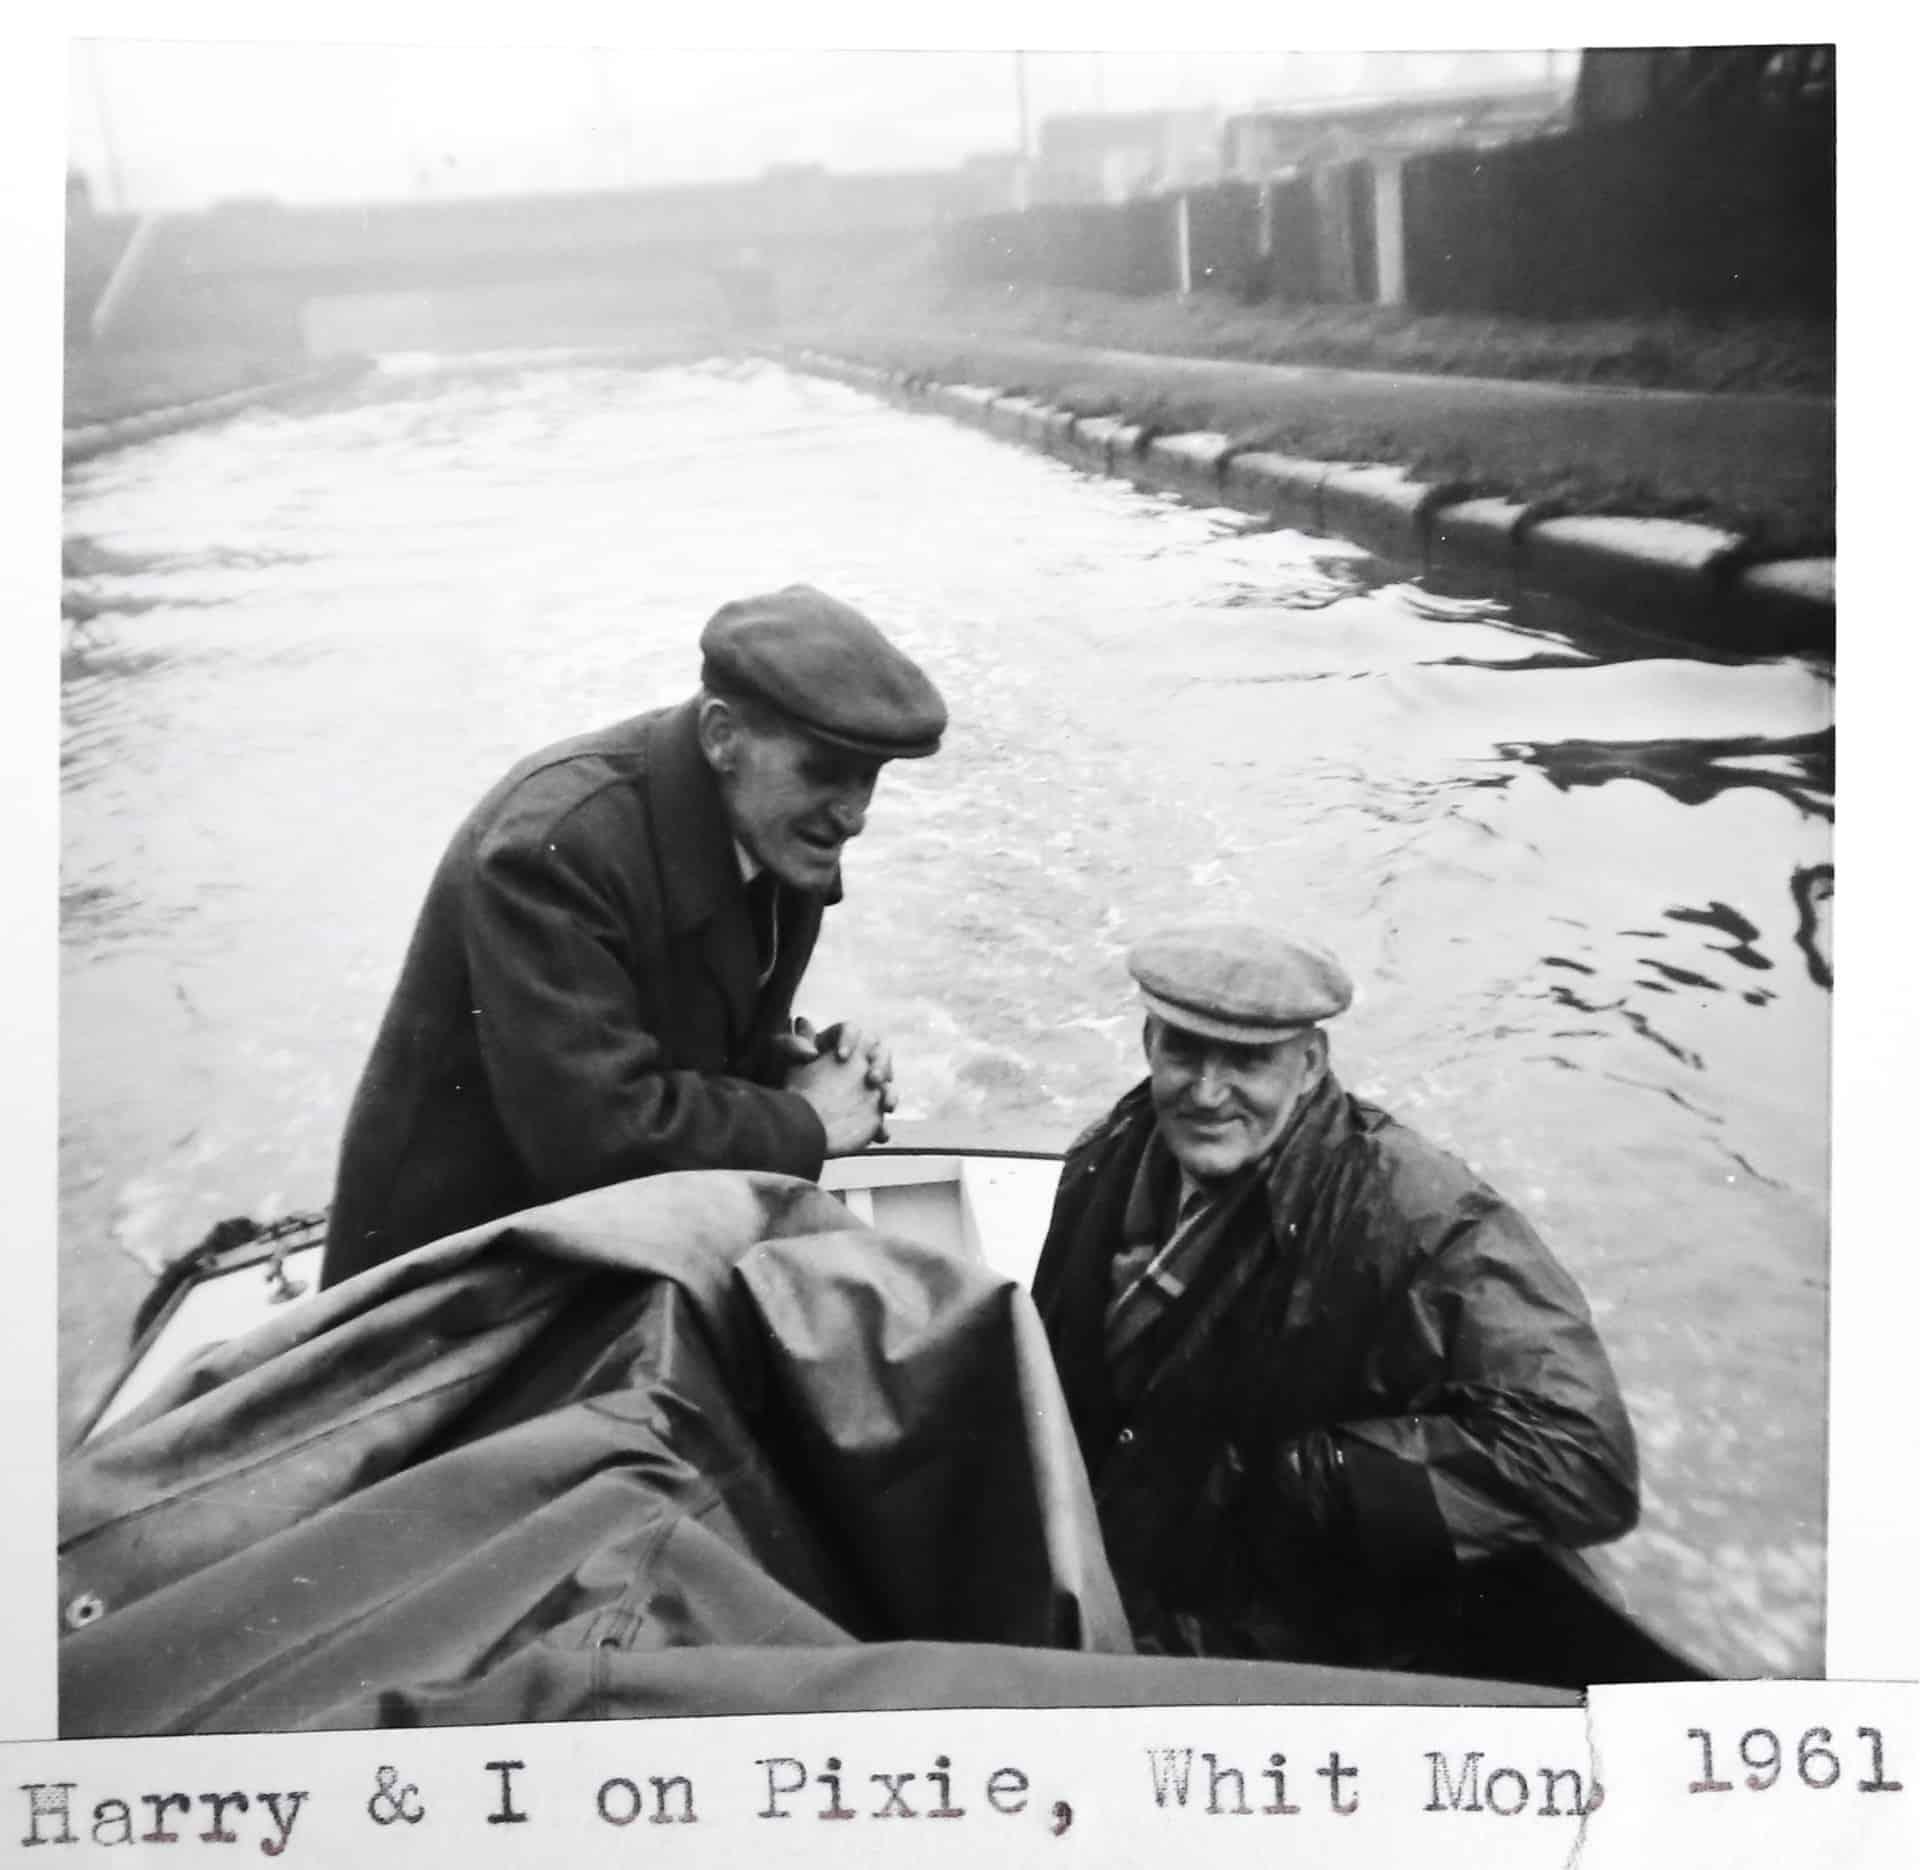 Will King (right) and his friend Harry, 1961